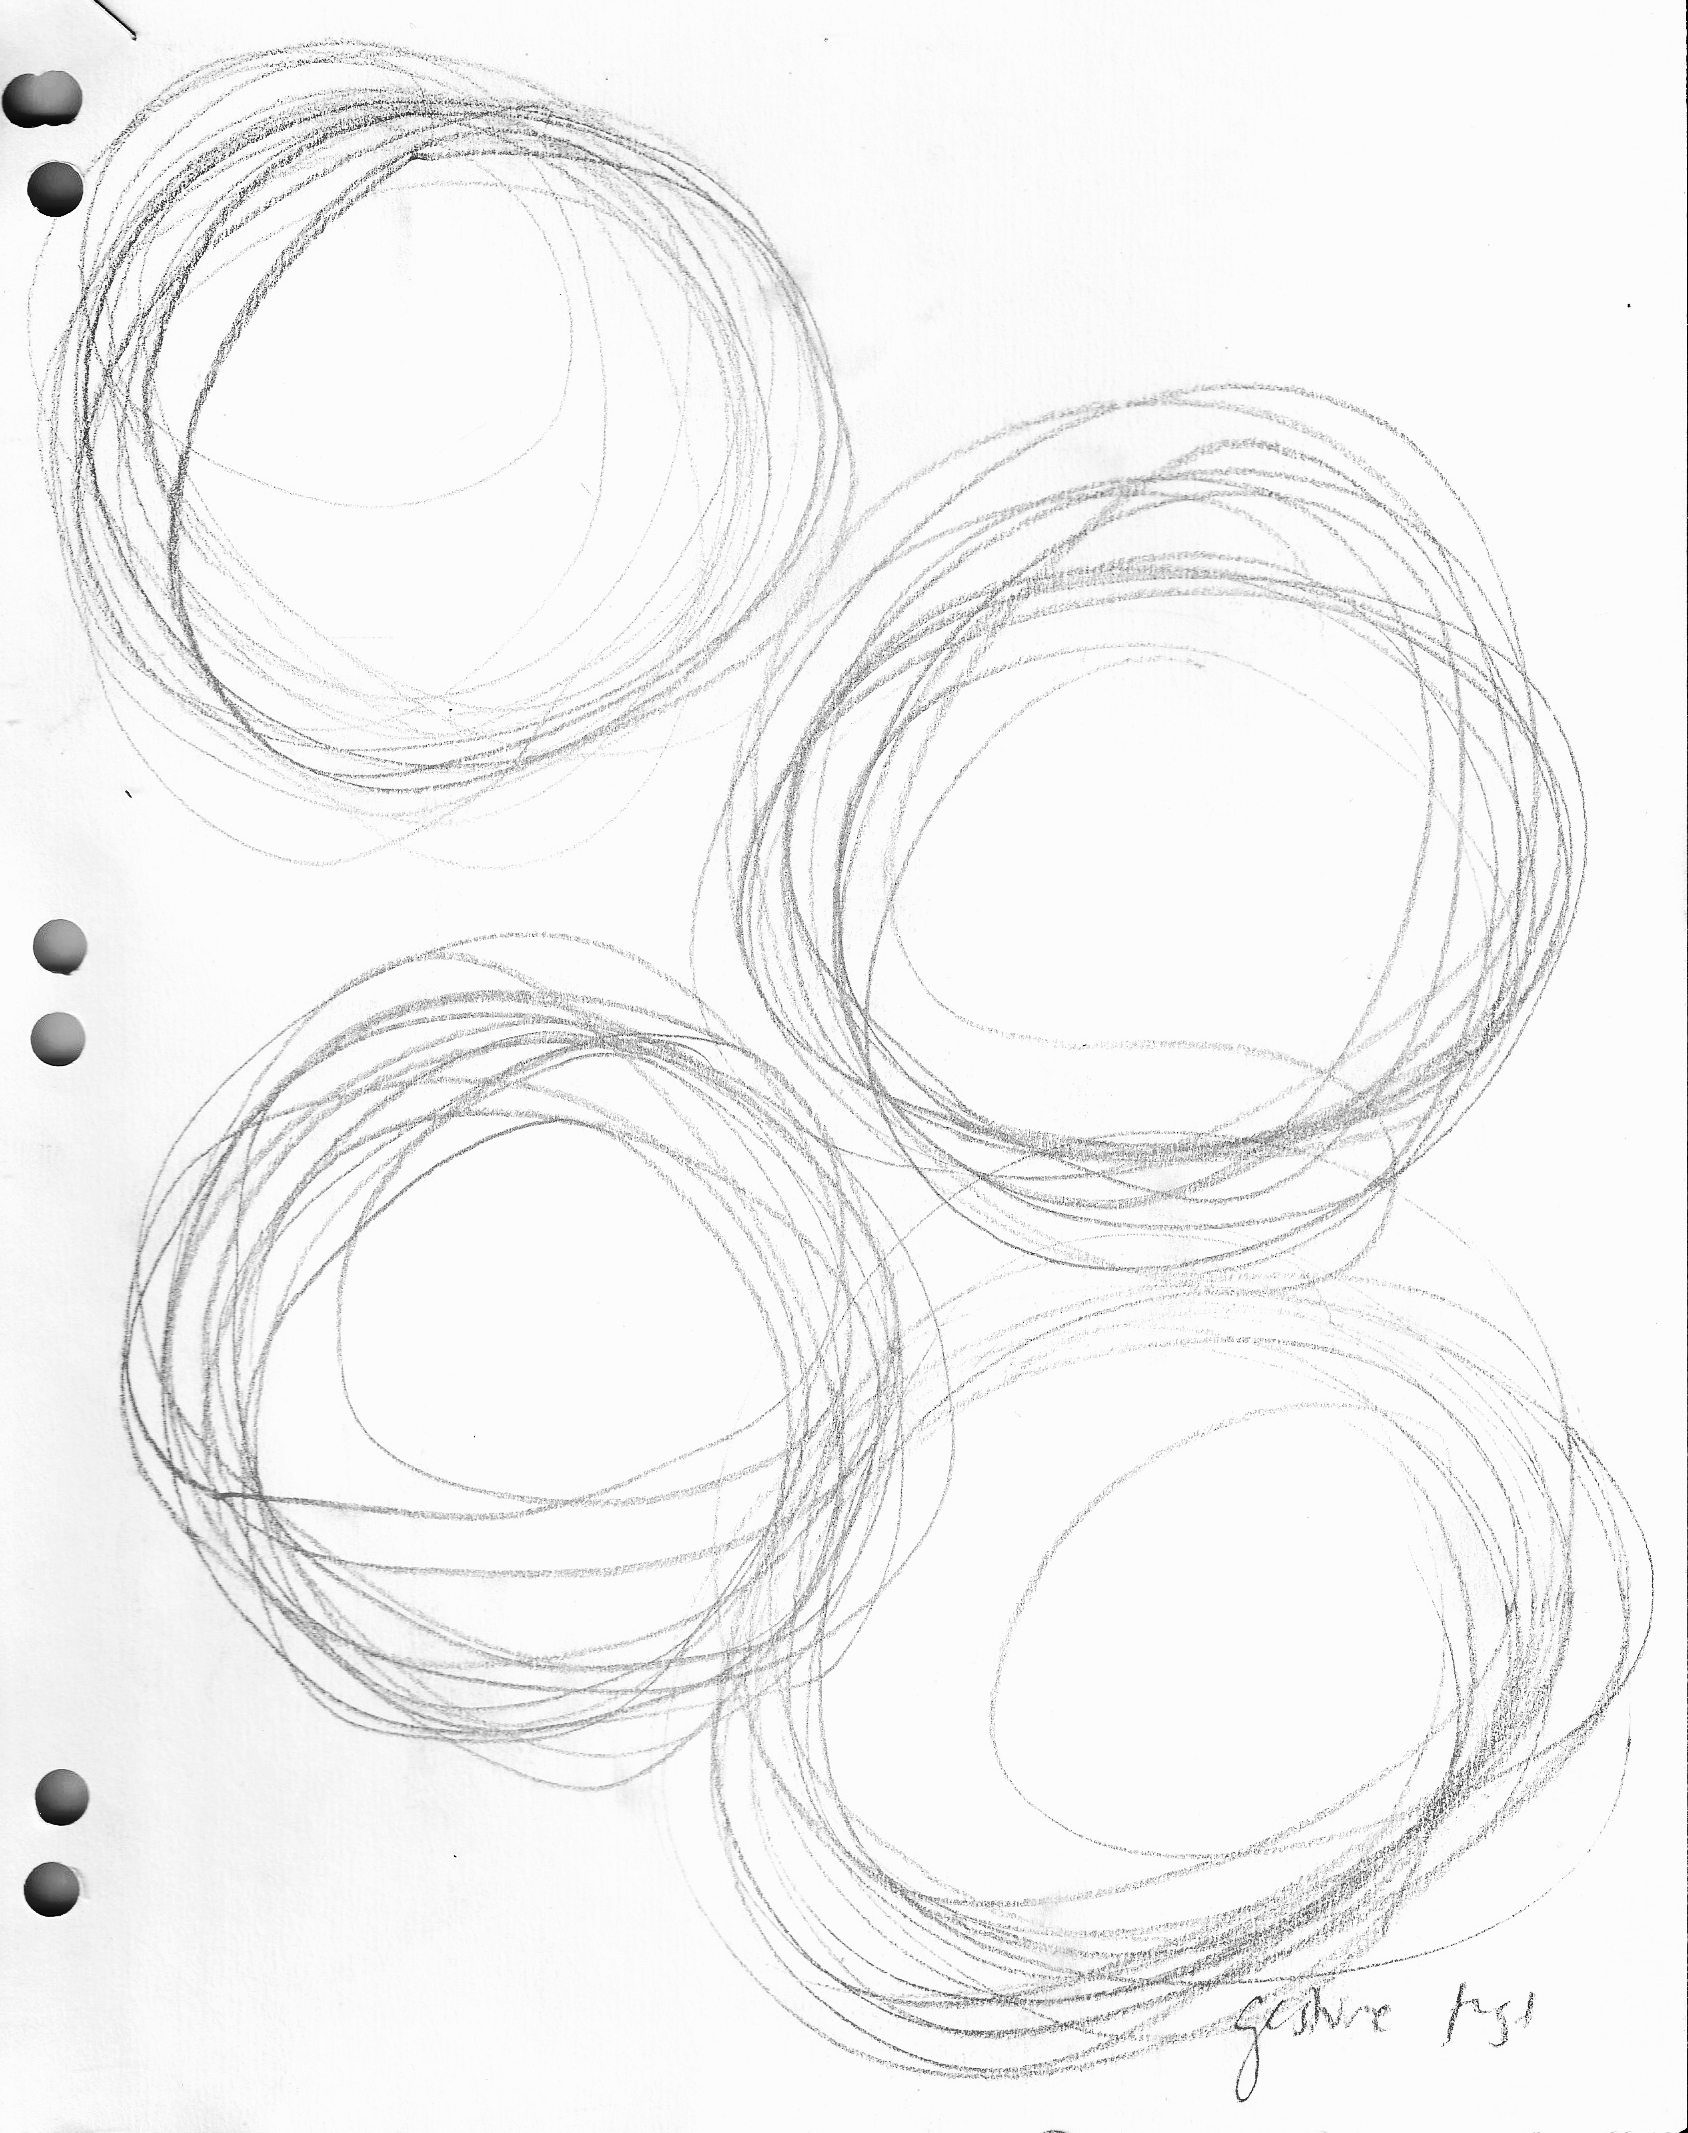 Interface Research.  To determine the most naturally sized circle, I asked friends (with varying hand sizes) to draw relaxed circles on paper. I collected over fifty circles and averaged their diameters to come up with the final dimensions.